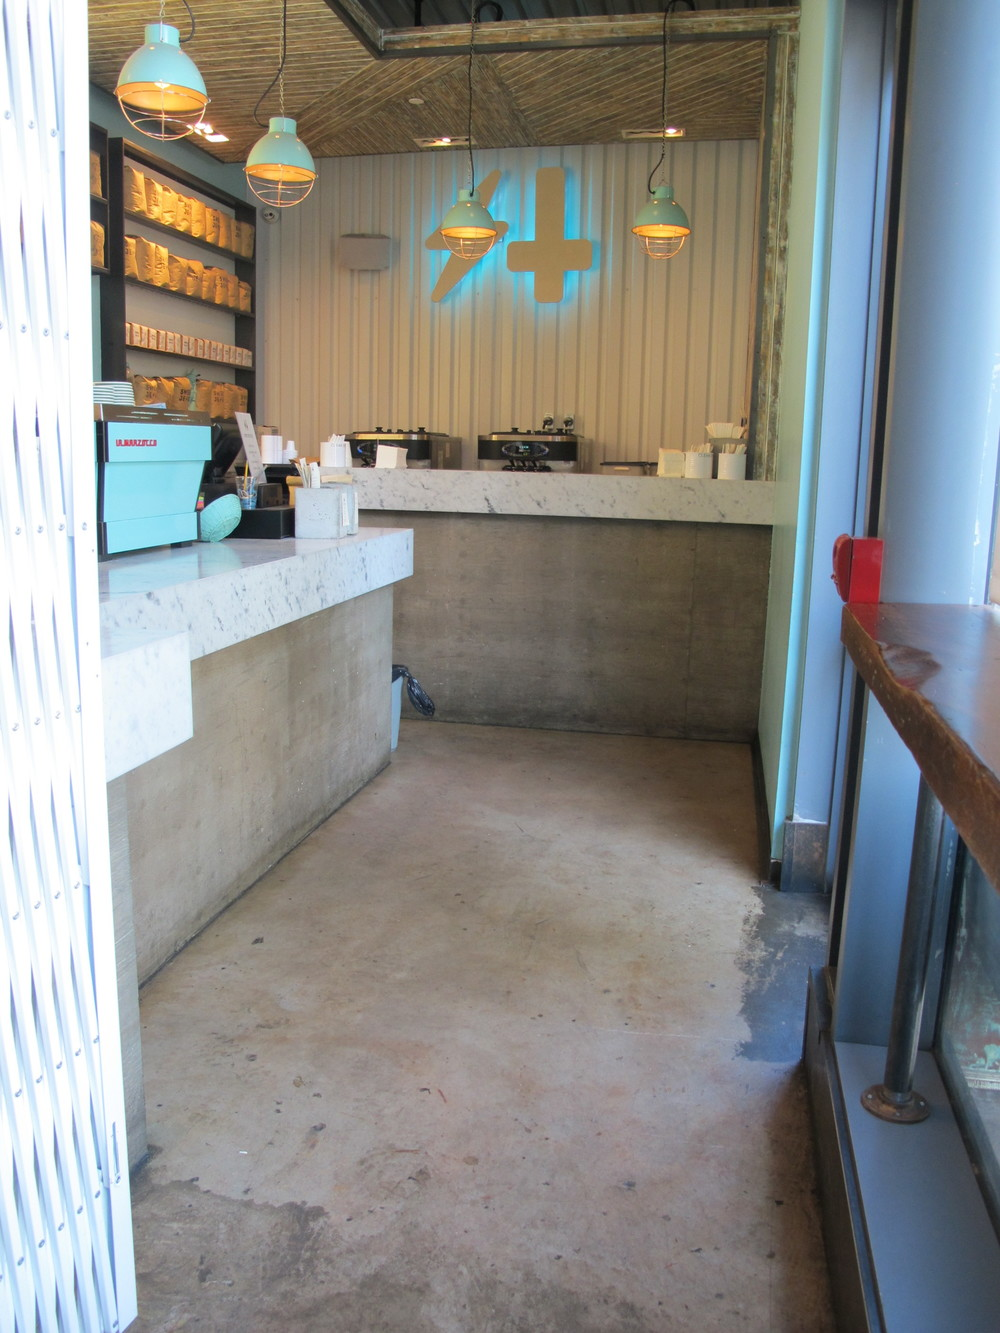 Picture of interior of cafe and ordering counter